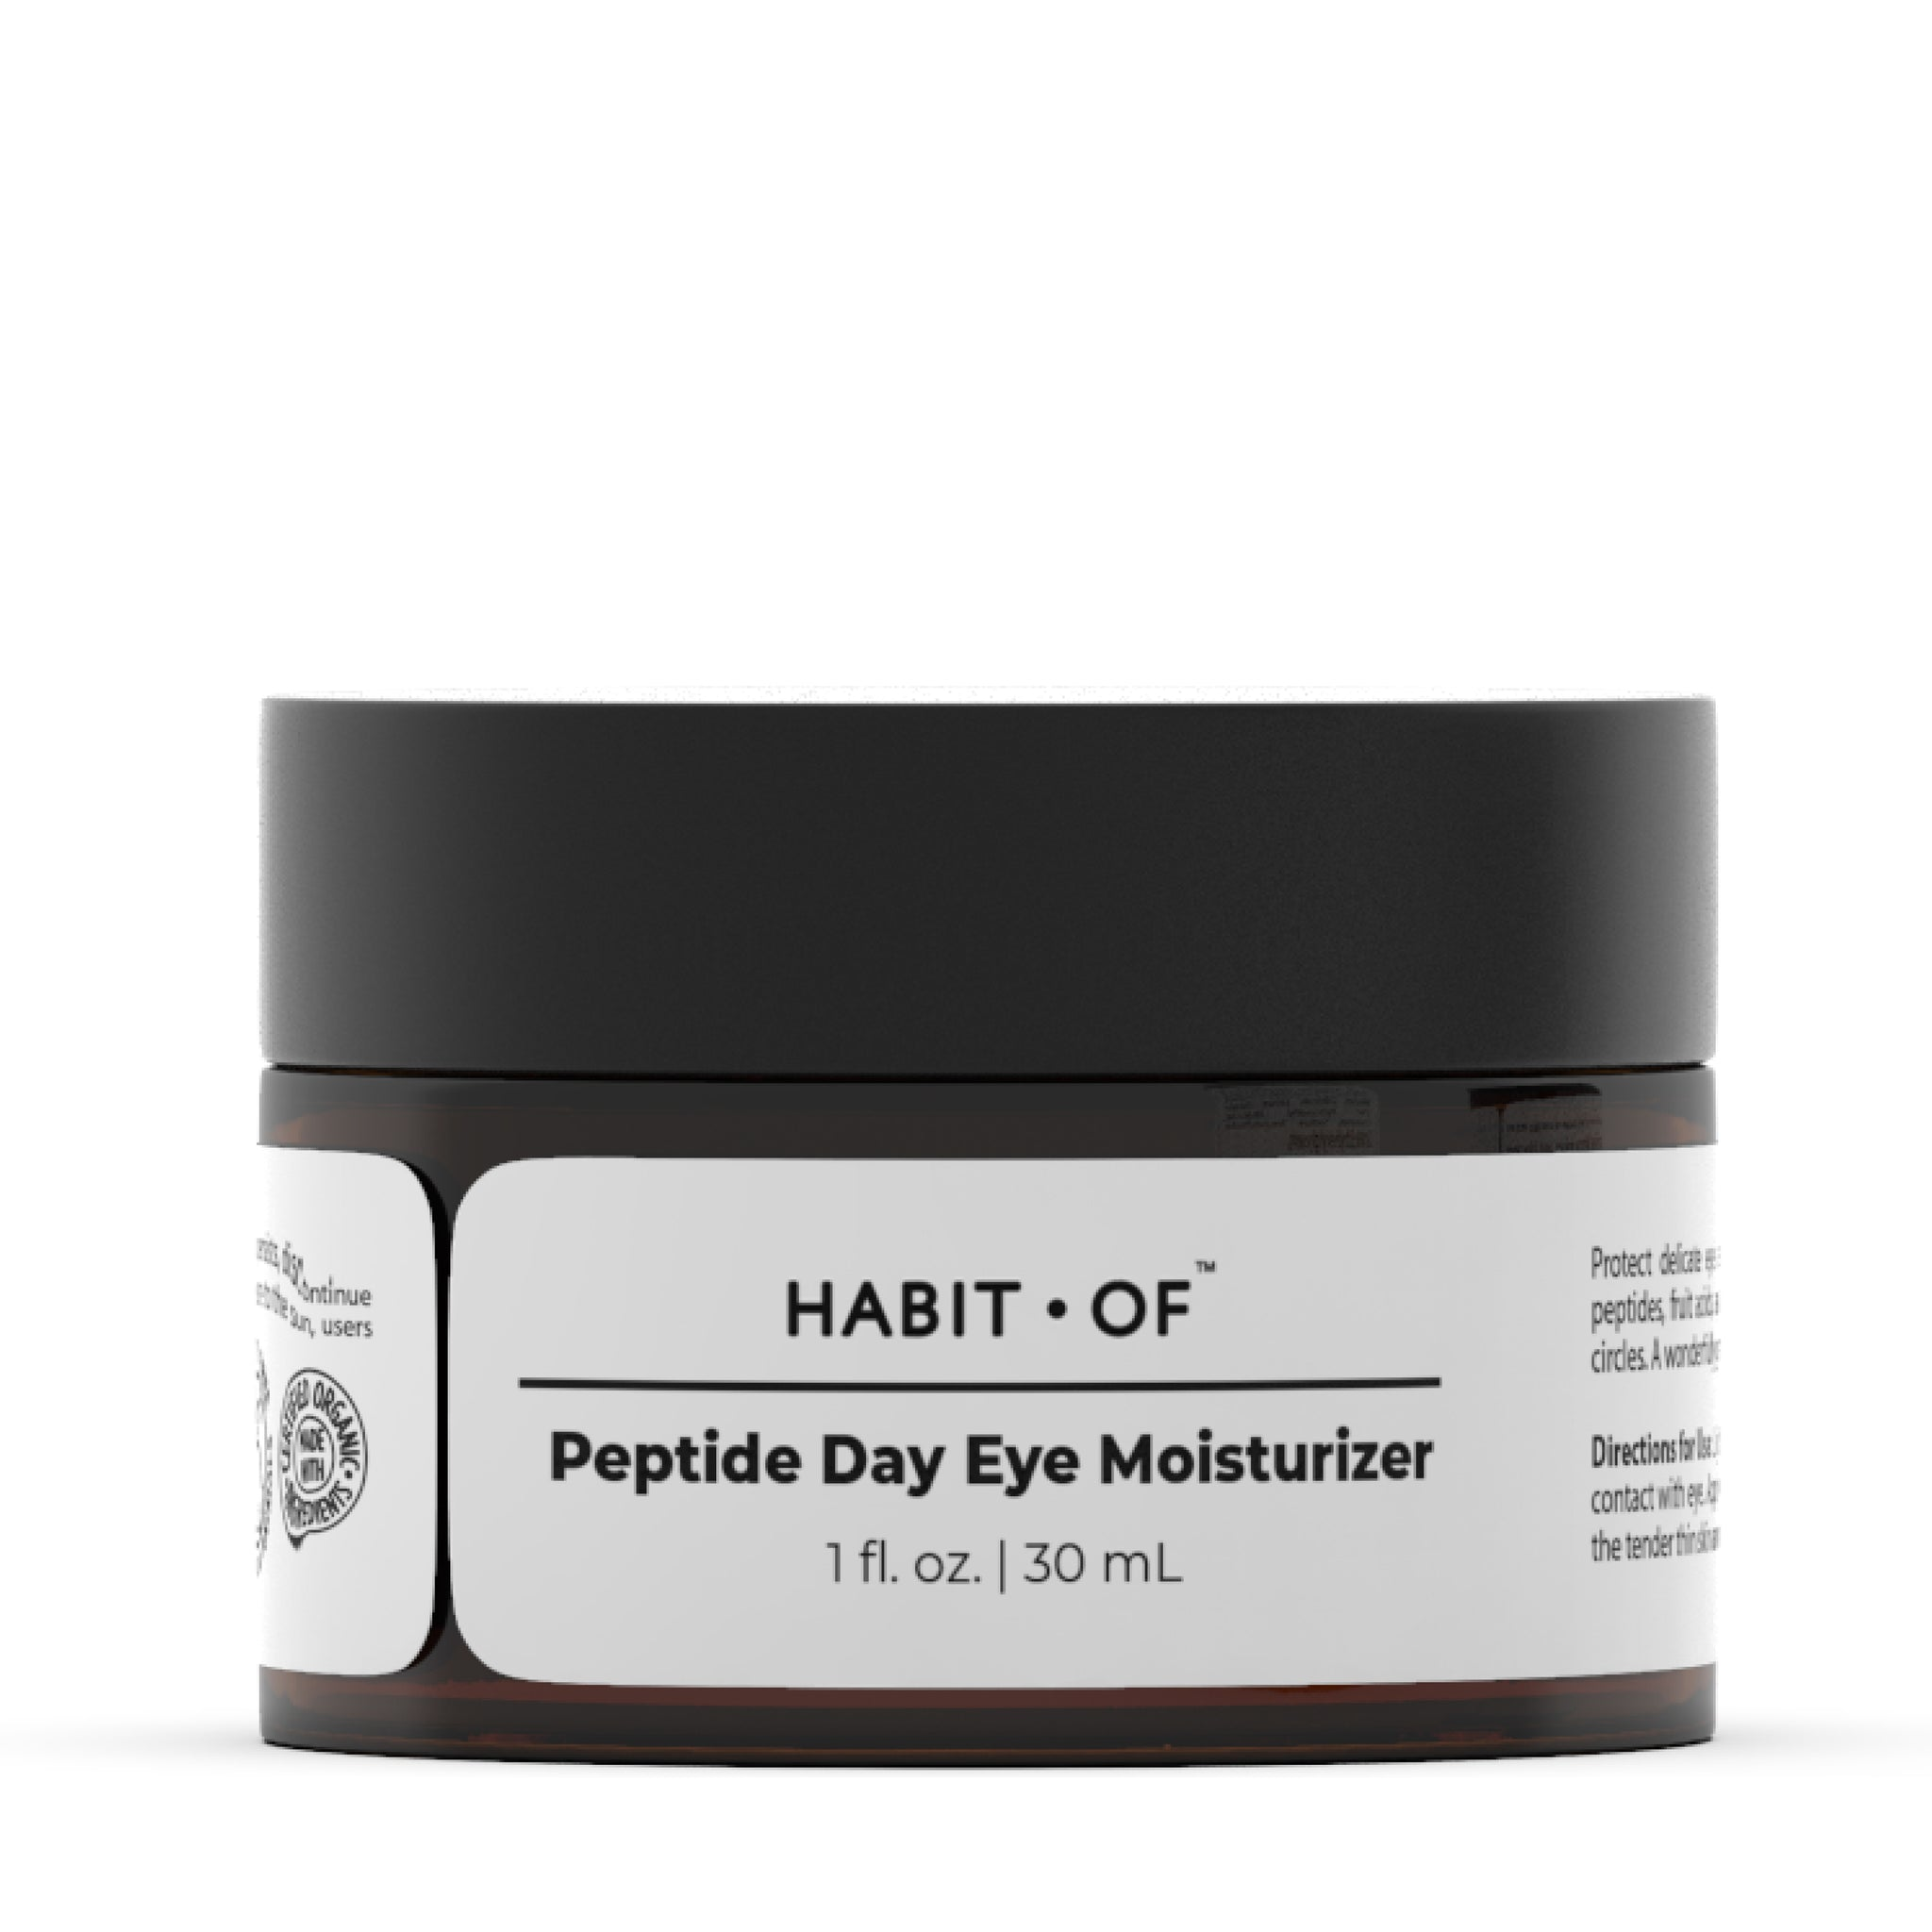 Peptide Day Eye Moisturizer